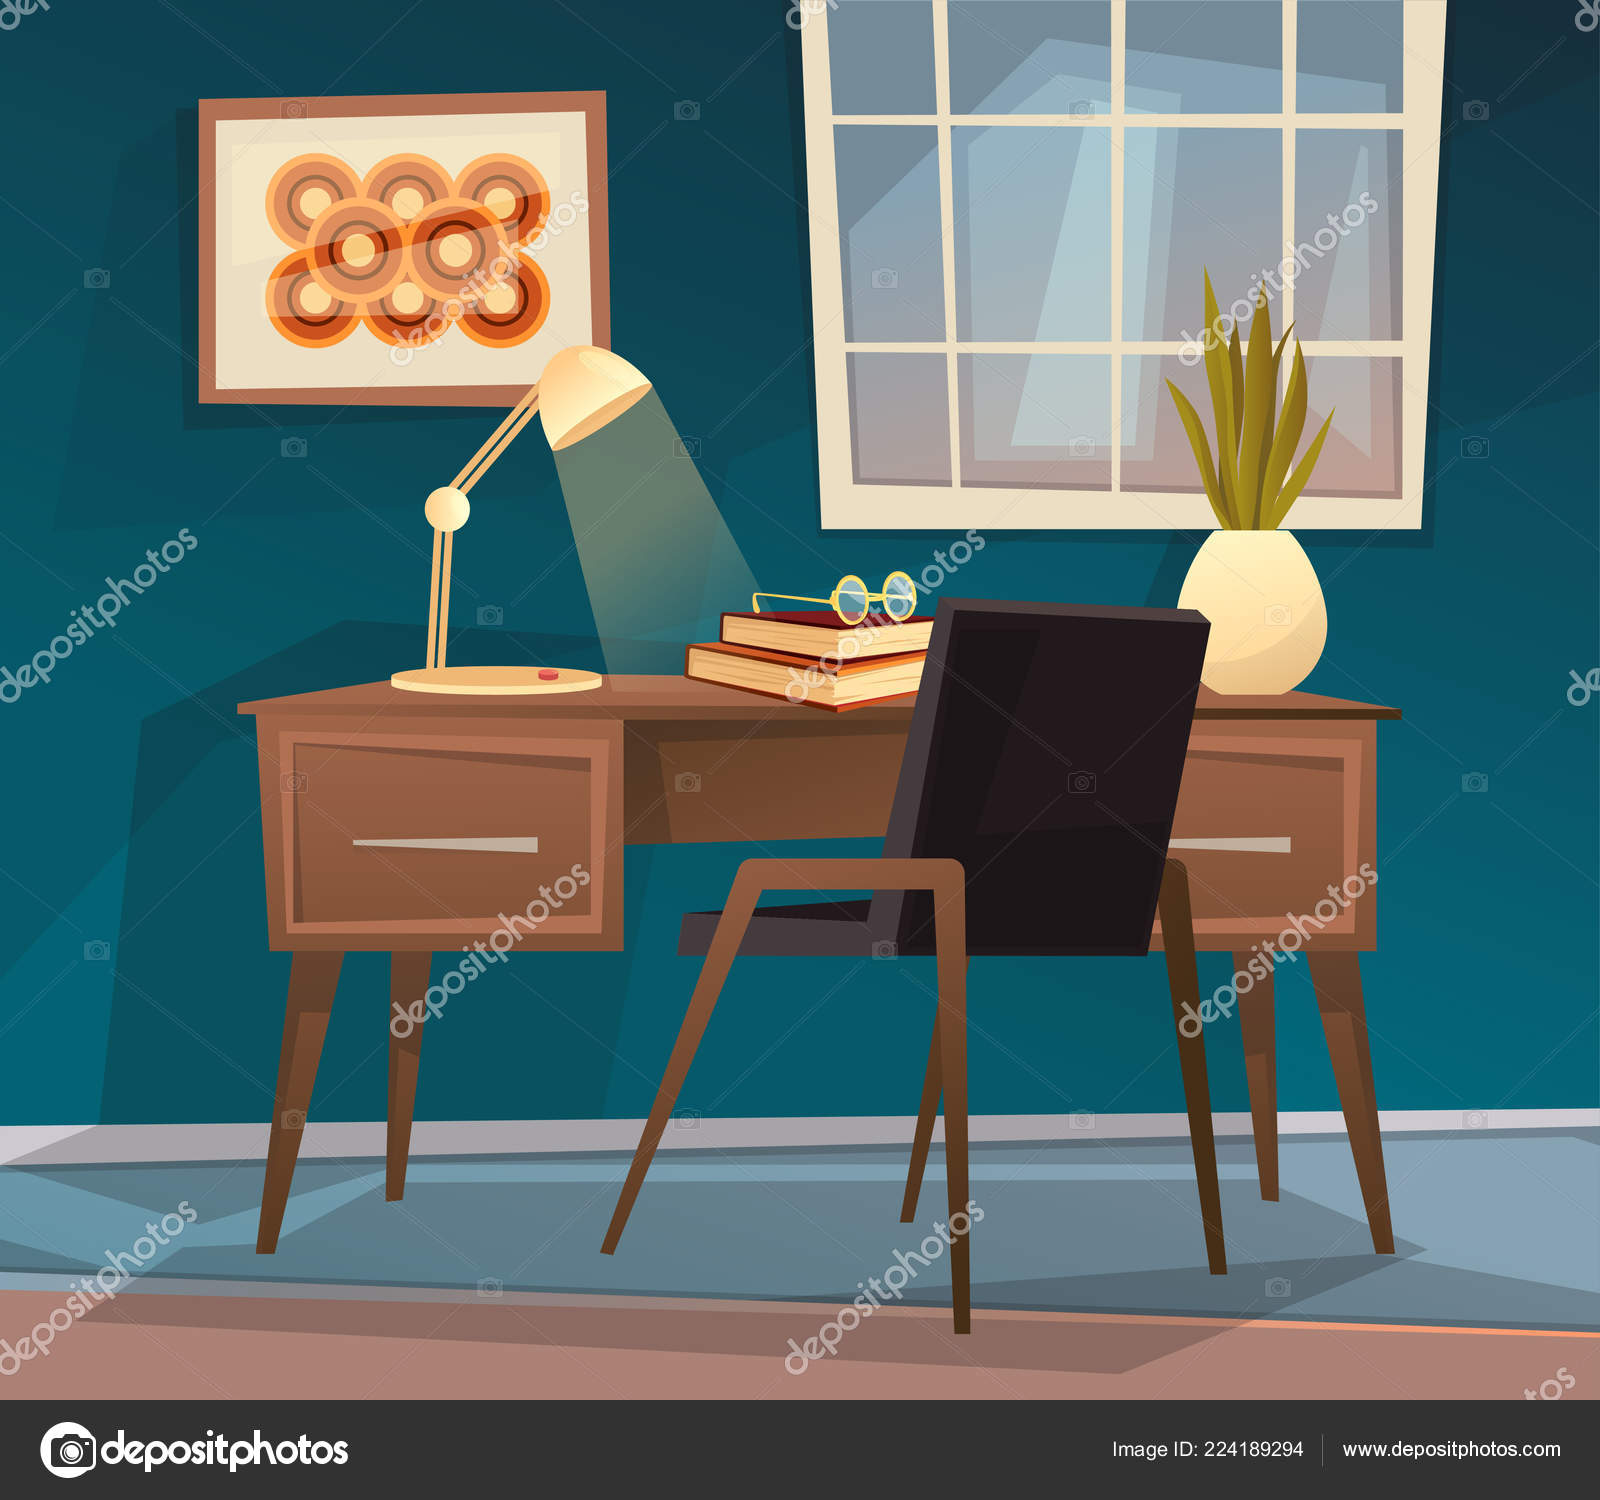 Swell Cute Cozy Home Office Workplace Vector Cartoon Illustration Download Free Architecture Designs Fluibritishbridgeorg